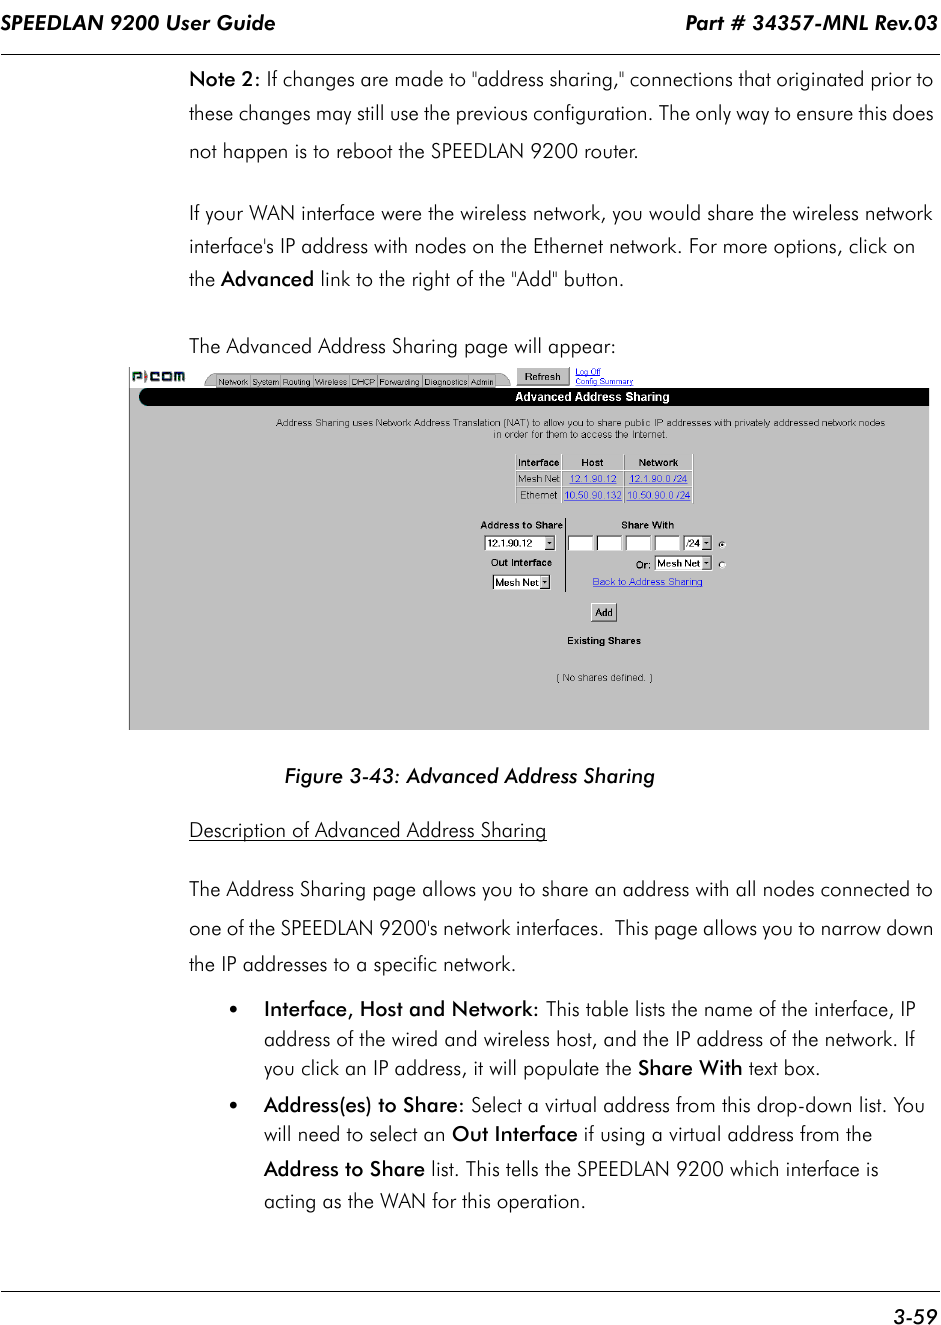 """SPEEDLAN 9200 User Guide                                                                    Part # 34357-MNL Rev.03      3-59                                                                                                                                                              Note 2: If changes are made to """"address sharing,"""" connections that originated prior to these changes may still use the previous configuration. The only way to ensure this does not happen is to reboot the SPEEDLAN 9200 router. If your WAN interface were the wireless network, you would share the wireless network interface's IP address with nodes on the Ethernet network. For more options, click on the Advanced link to the right of the """"Add"""" button.  The Advanced Address Sharing page will appear: Figure 3-43: Advanced Address SharingDescription of Advanced Address SharingThe Address Sharing page allows you to share an address with all nodes connected to one of the SPEEDLAN 9200's network interfaces.  This page allows you to narrow down the IP addresses to a specific network.•Interface, Host and Network: This table lists the name of the interface, IP address of the wired and wireless host, and the IP address of the network. If you click an IP address, it will populate the Share With text box.•Address(es) to Share: Select a virtual address from this drop-down list. You will need to select an Out Interface if using a virtual address from the Address to Share list. This tells the SPEEDLAN 9200 which interface is acting as the WAN for this operation."""